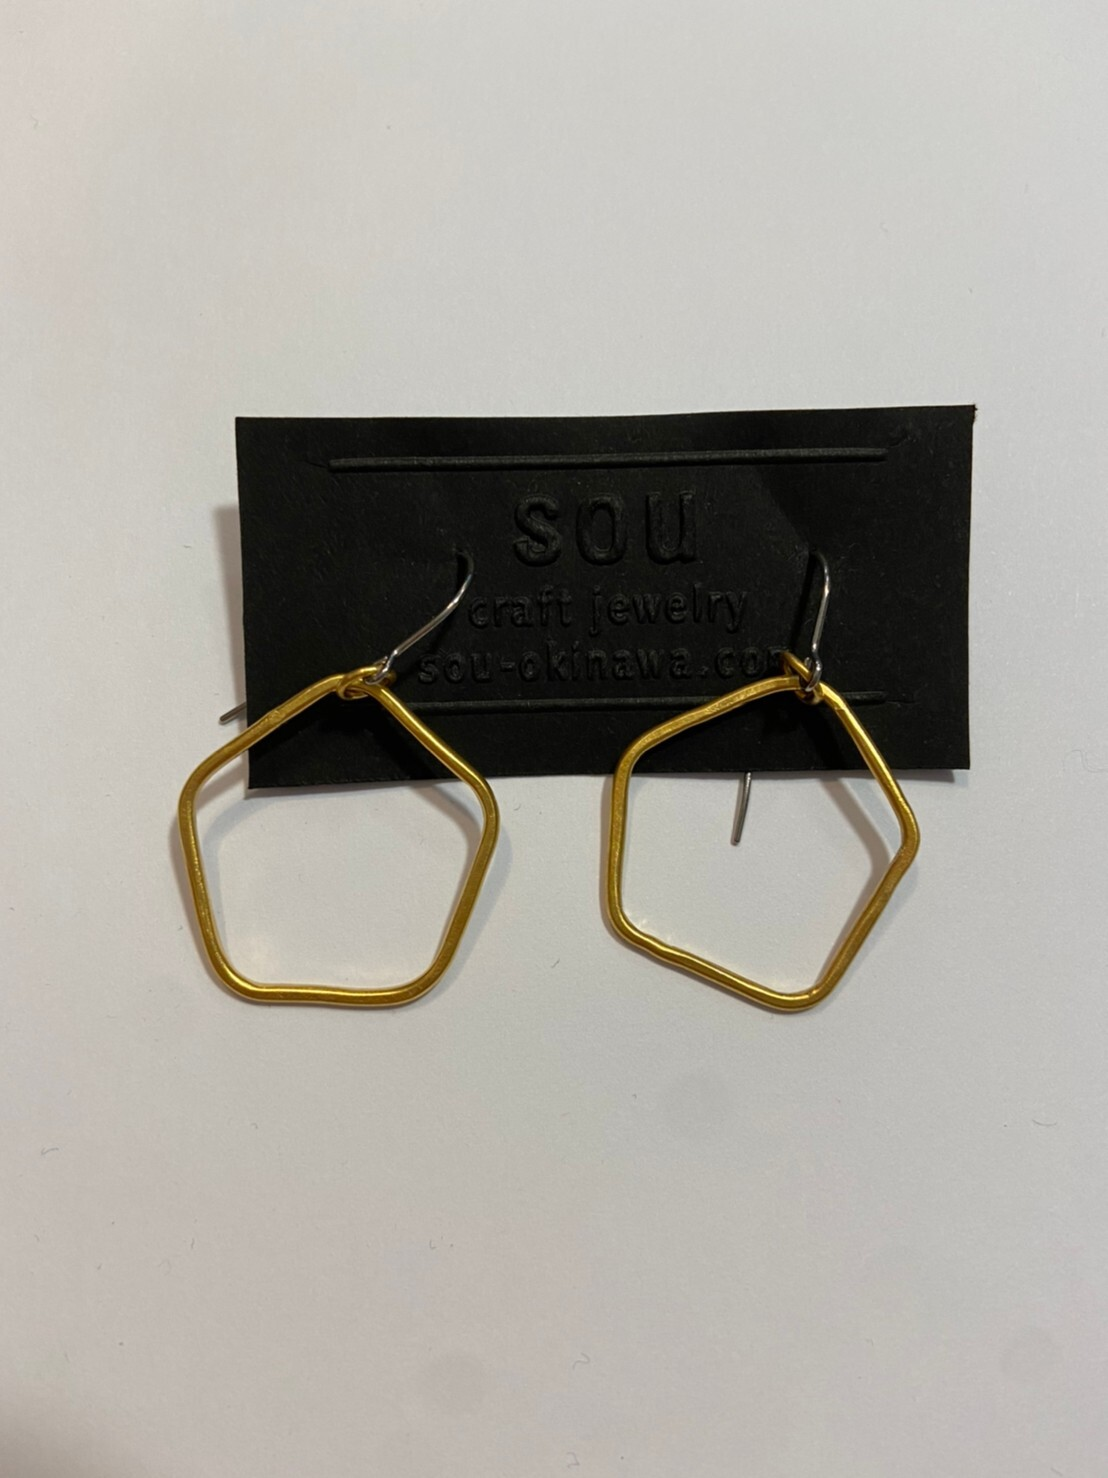 【atelier sou】24kメッキ 5角形ピアス/br